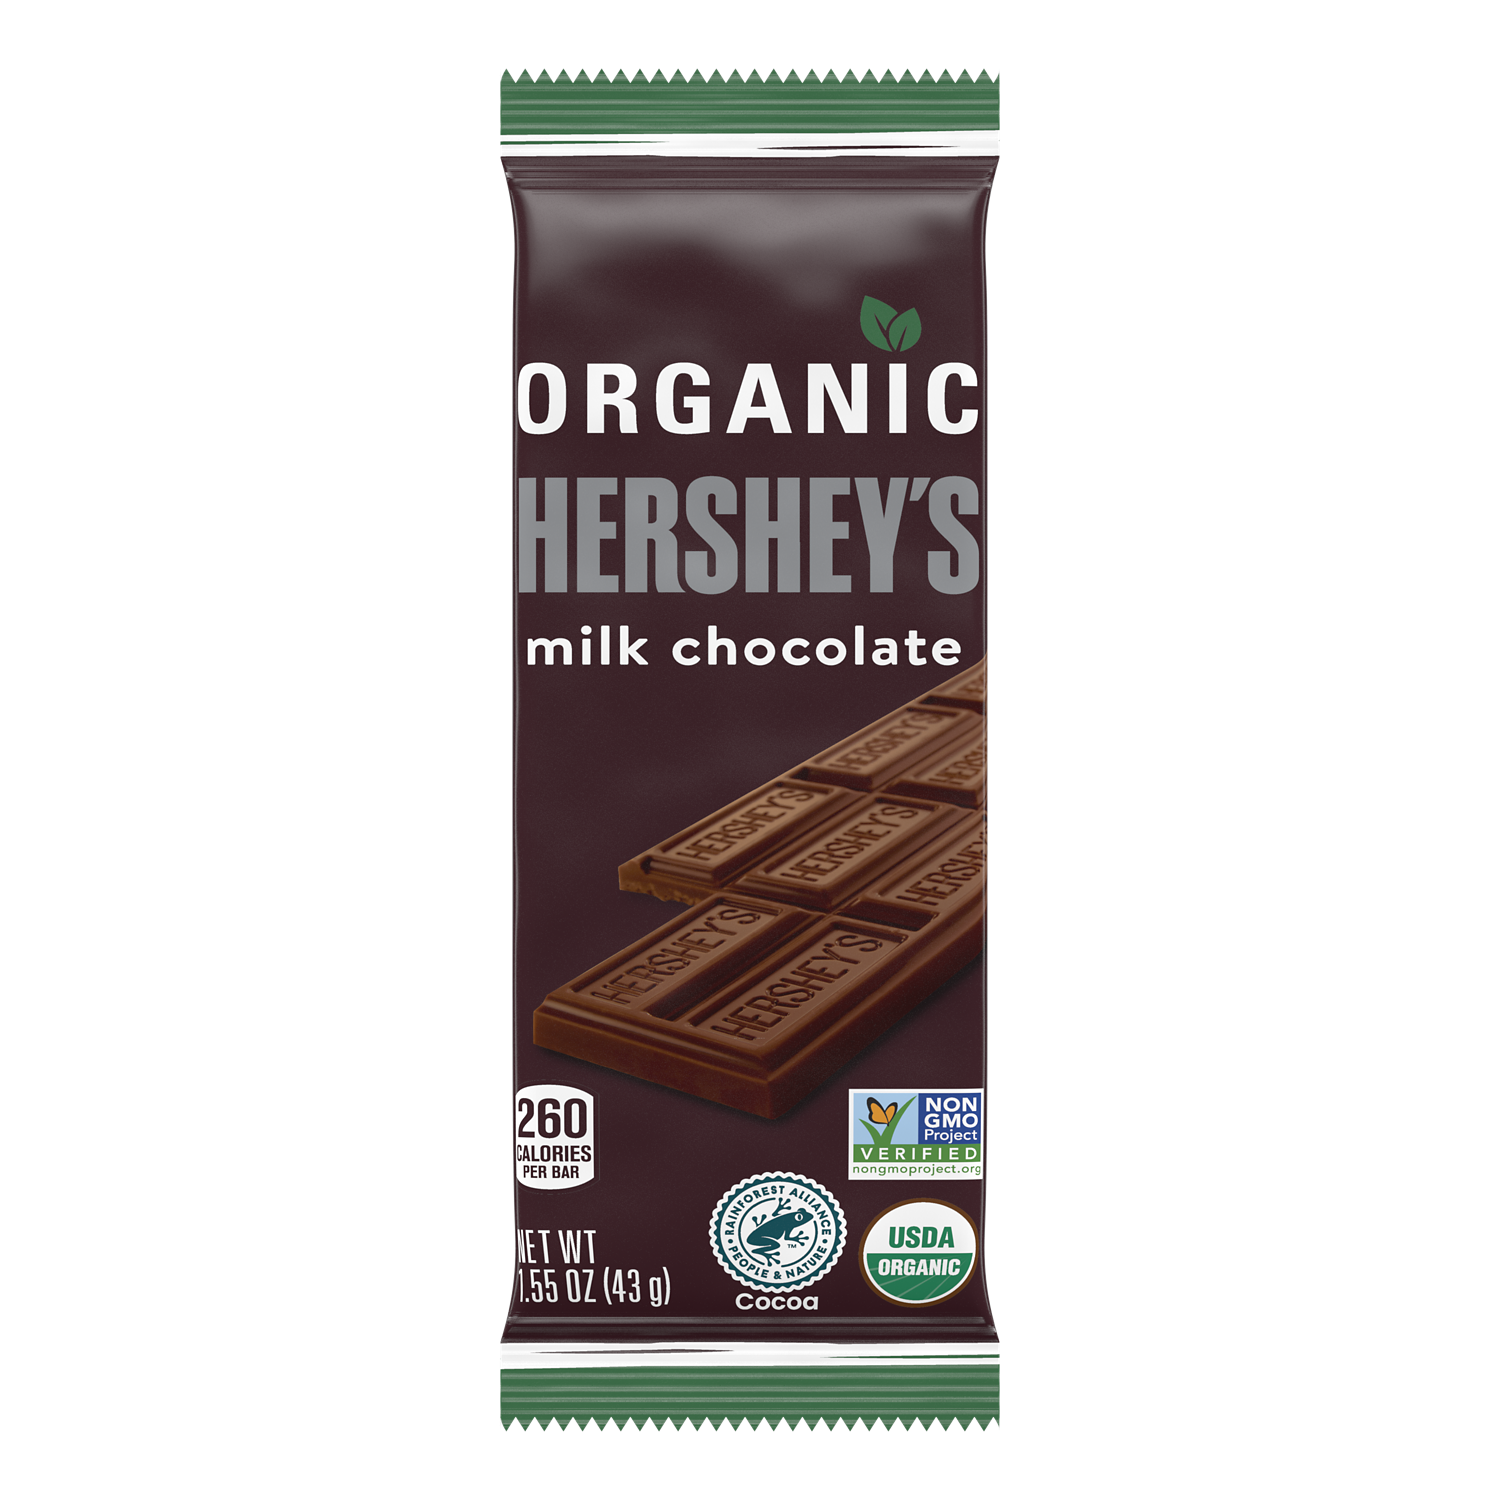 HERSHEY'S Organic Milk Chocolate Candy Bar, 1.55 oz - Front of Package